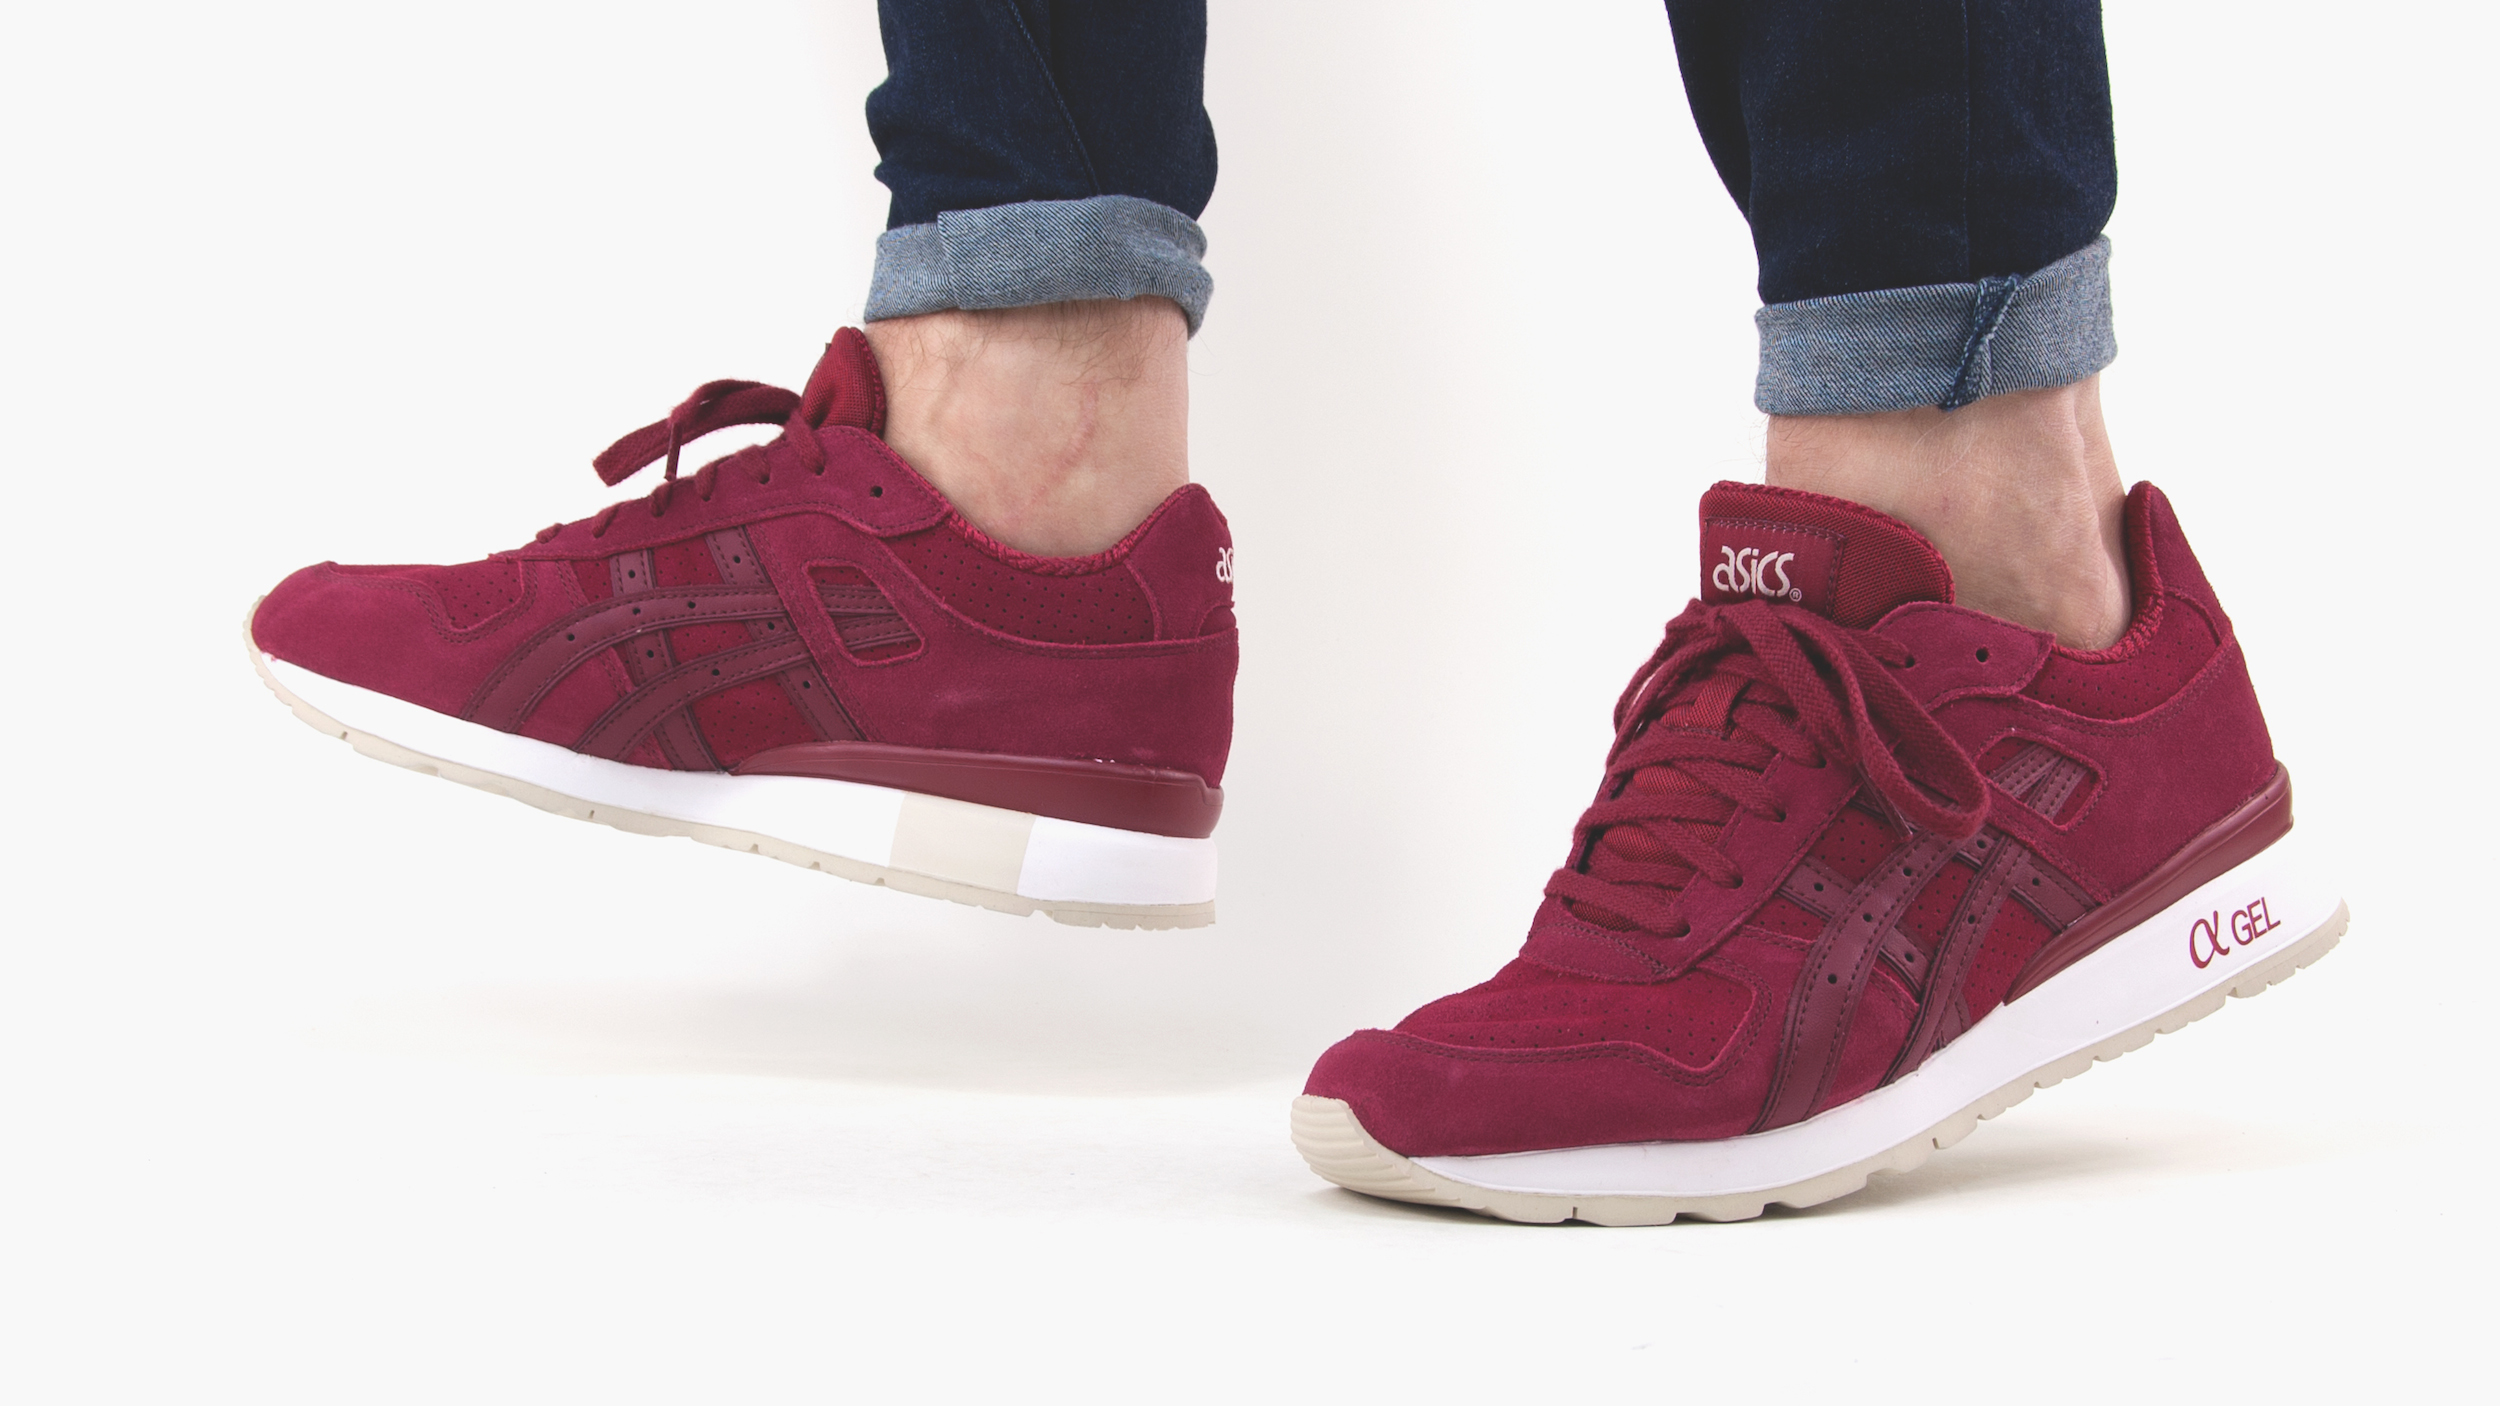 asics-gt-ii-suede-pack-MATE-Promo-7